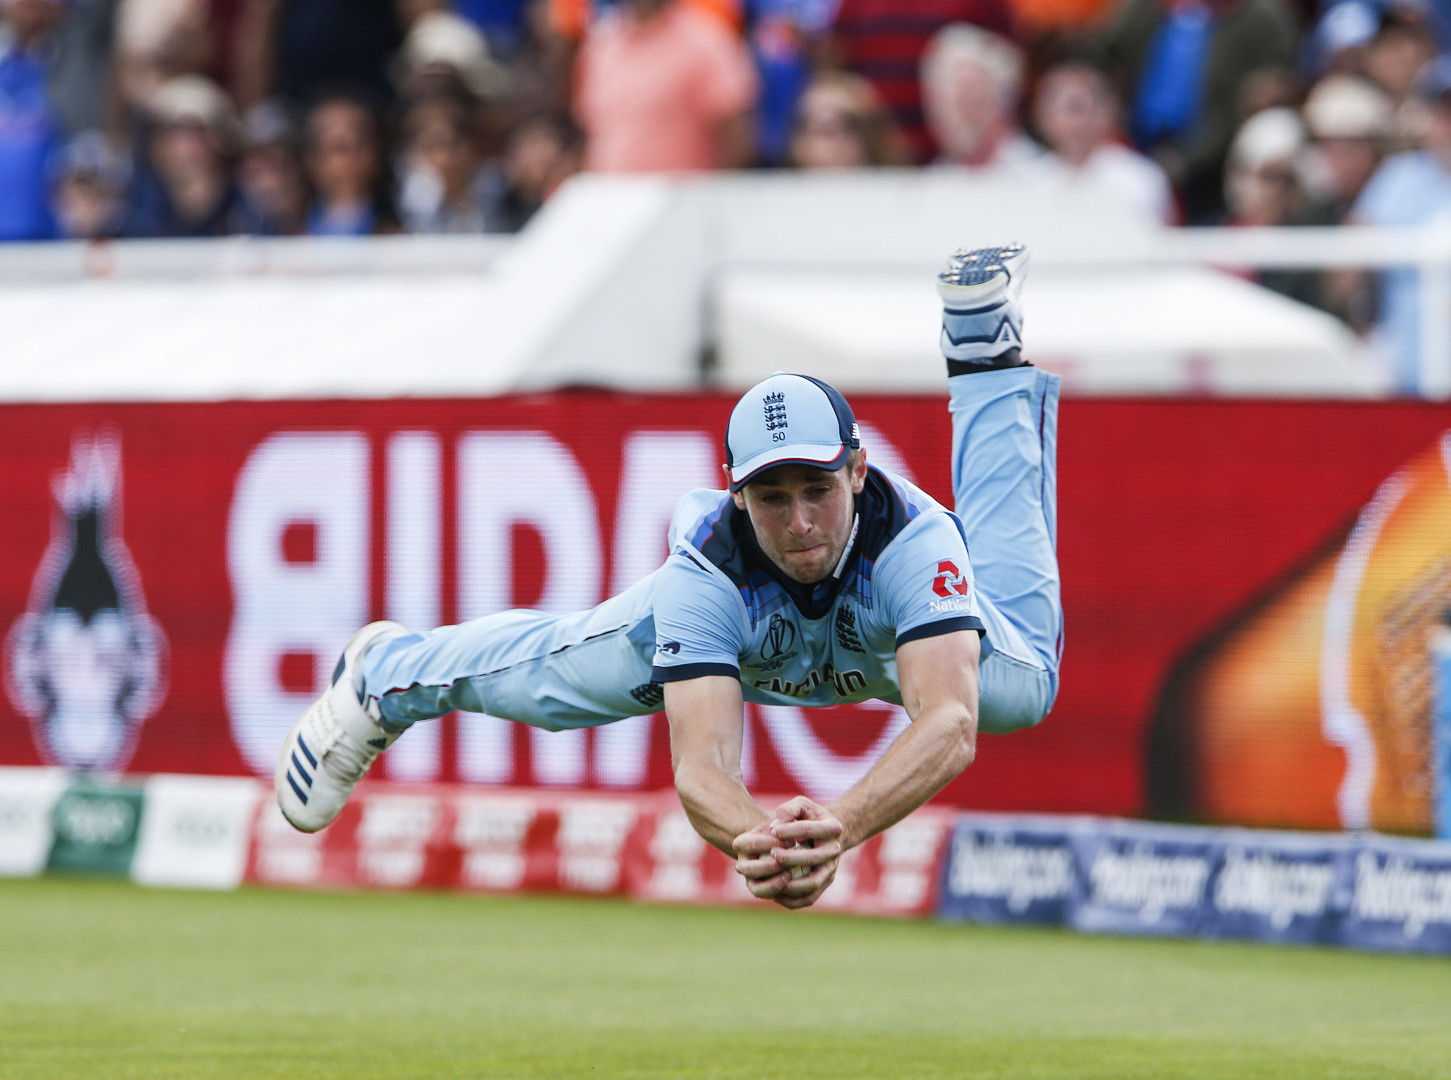 Chris Woakes diving catch (optimized)